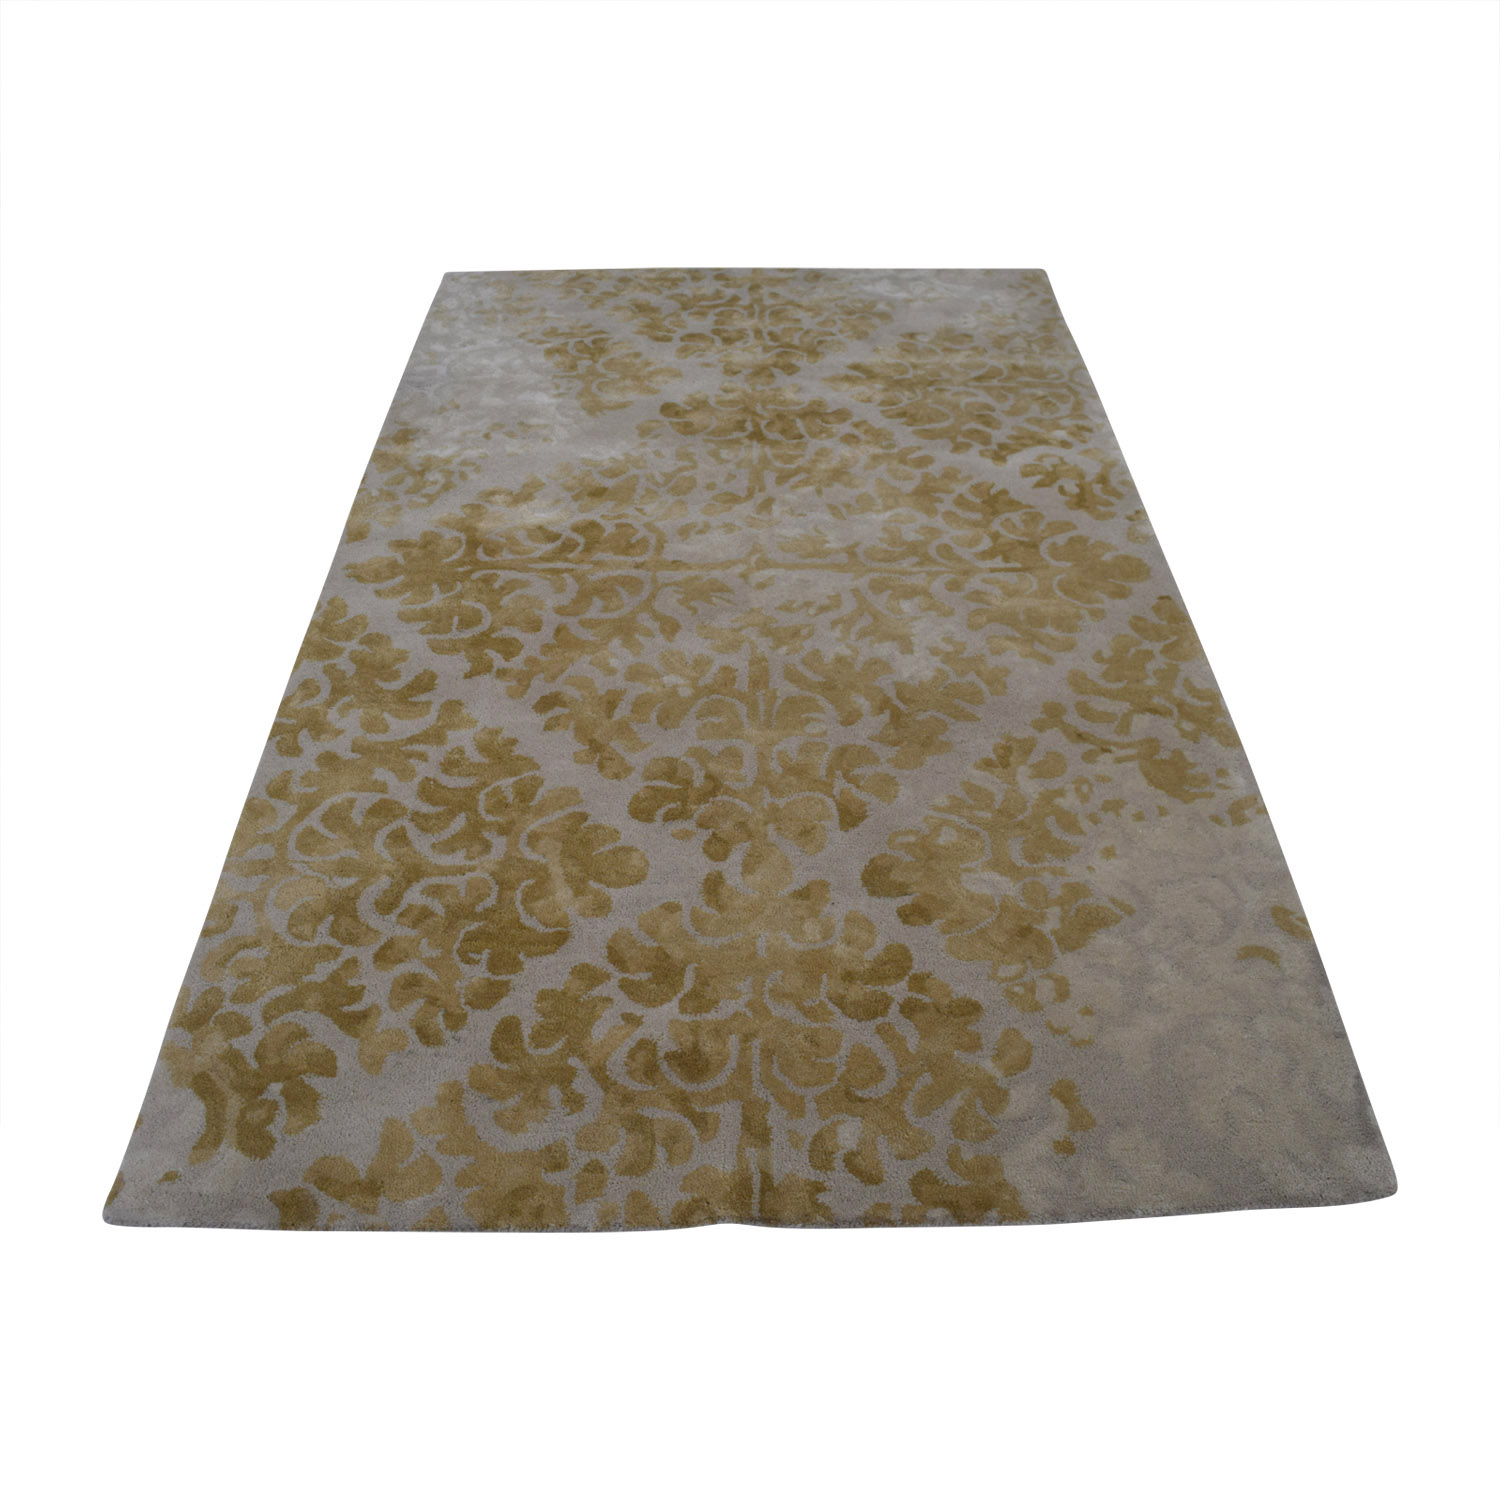 86 Off Obeetee Obeetee Yellow Floral Wool Rug Decor